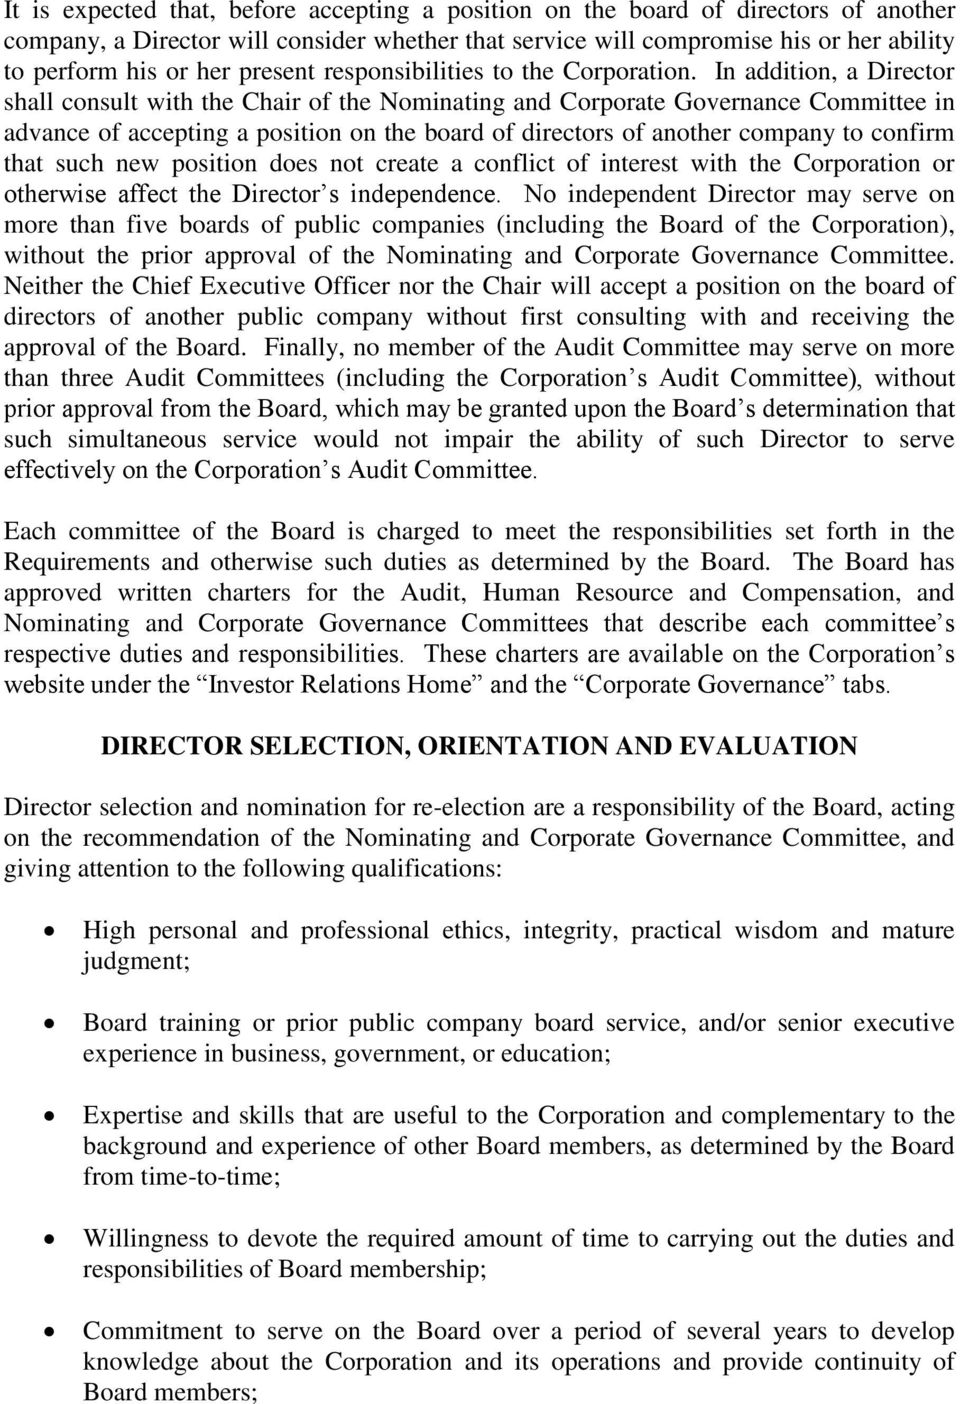 In addition, a Director shall consult with the Chair of the Nominating and Corporate Governance Committee in advance of accepting a position on the board of directors of another company to confirm